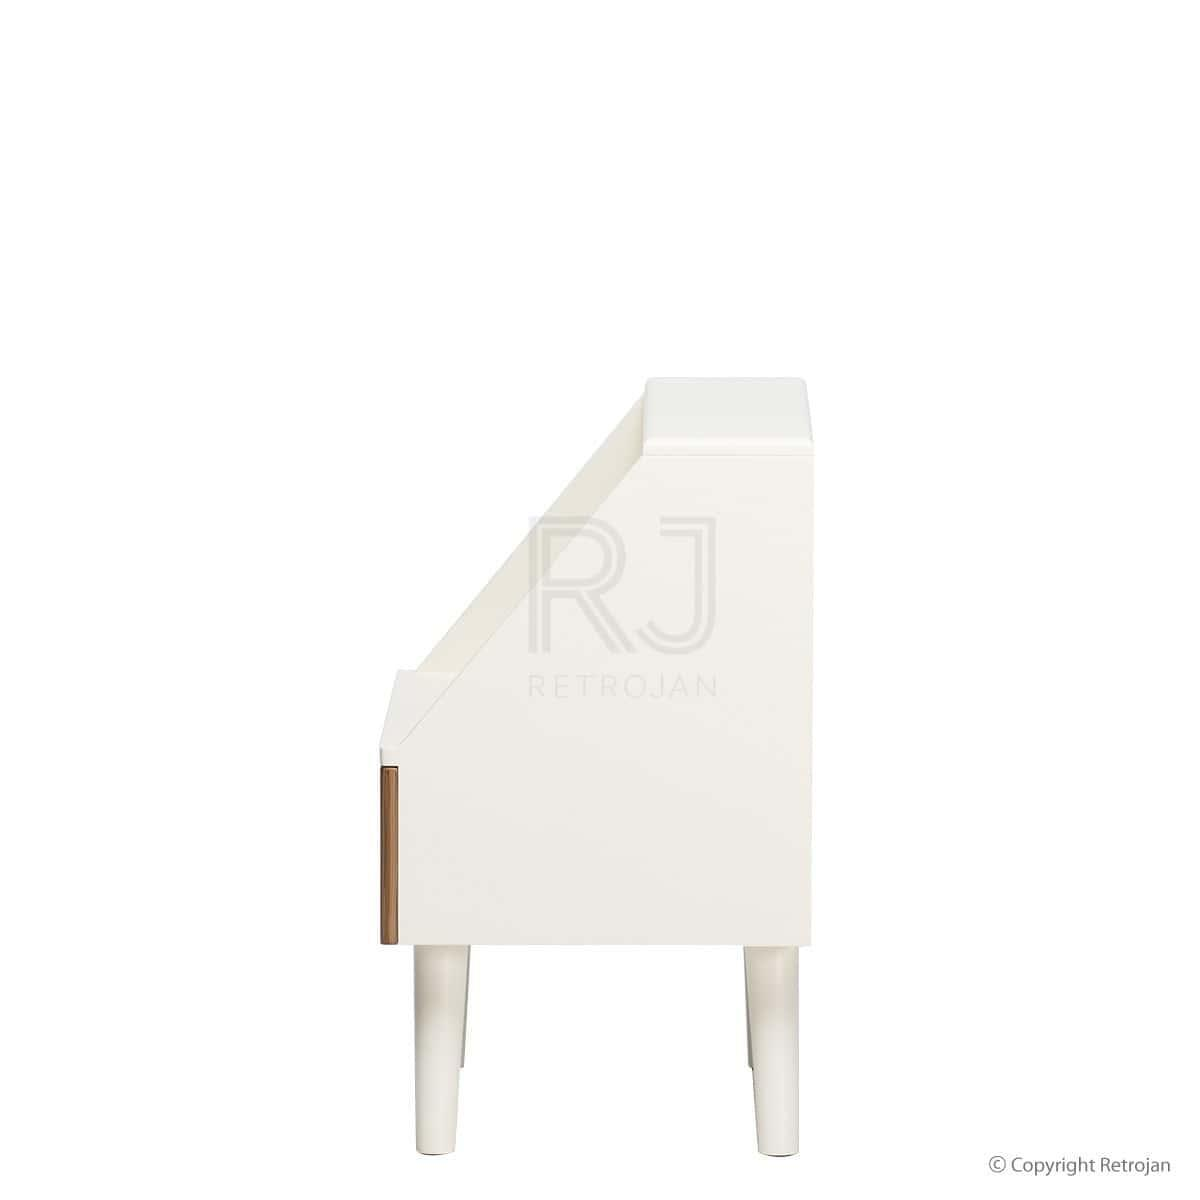 Frederick Retro Style Side Table - White/Natural